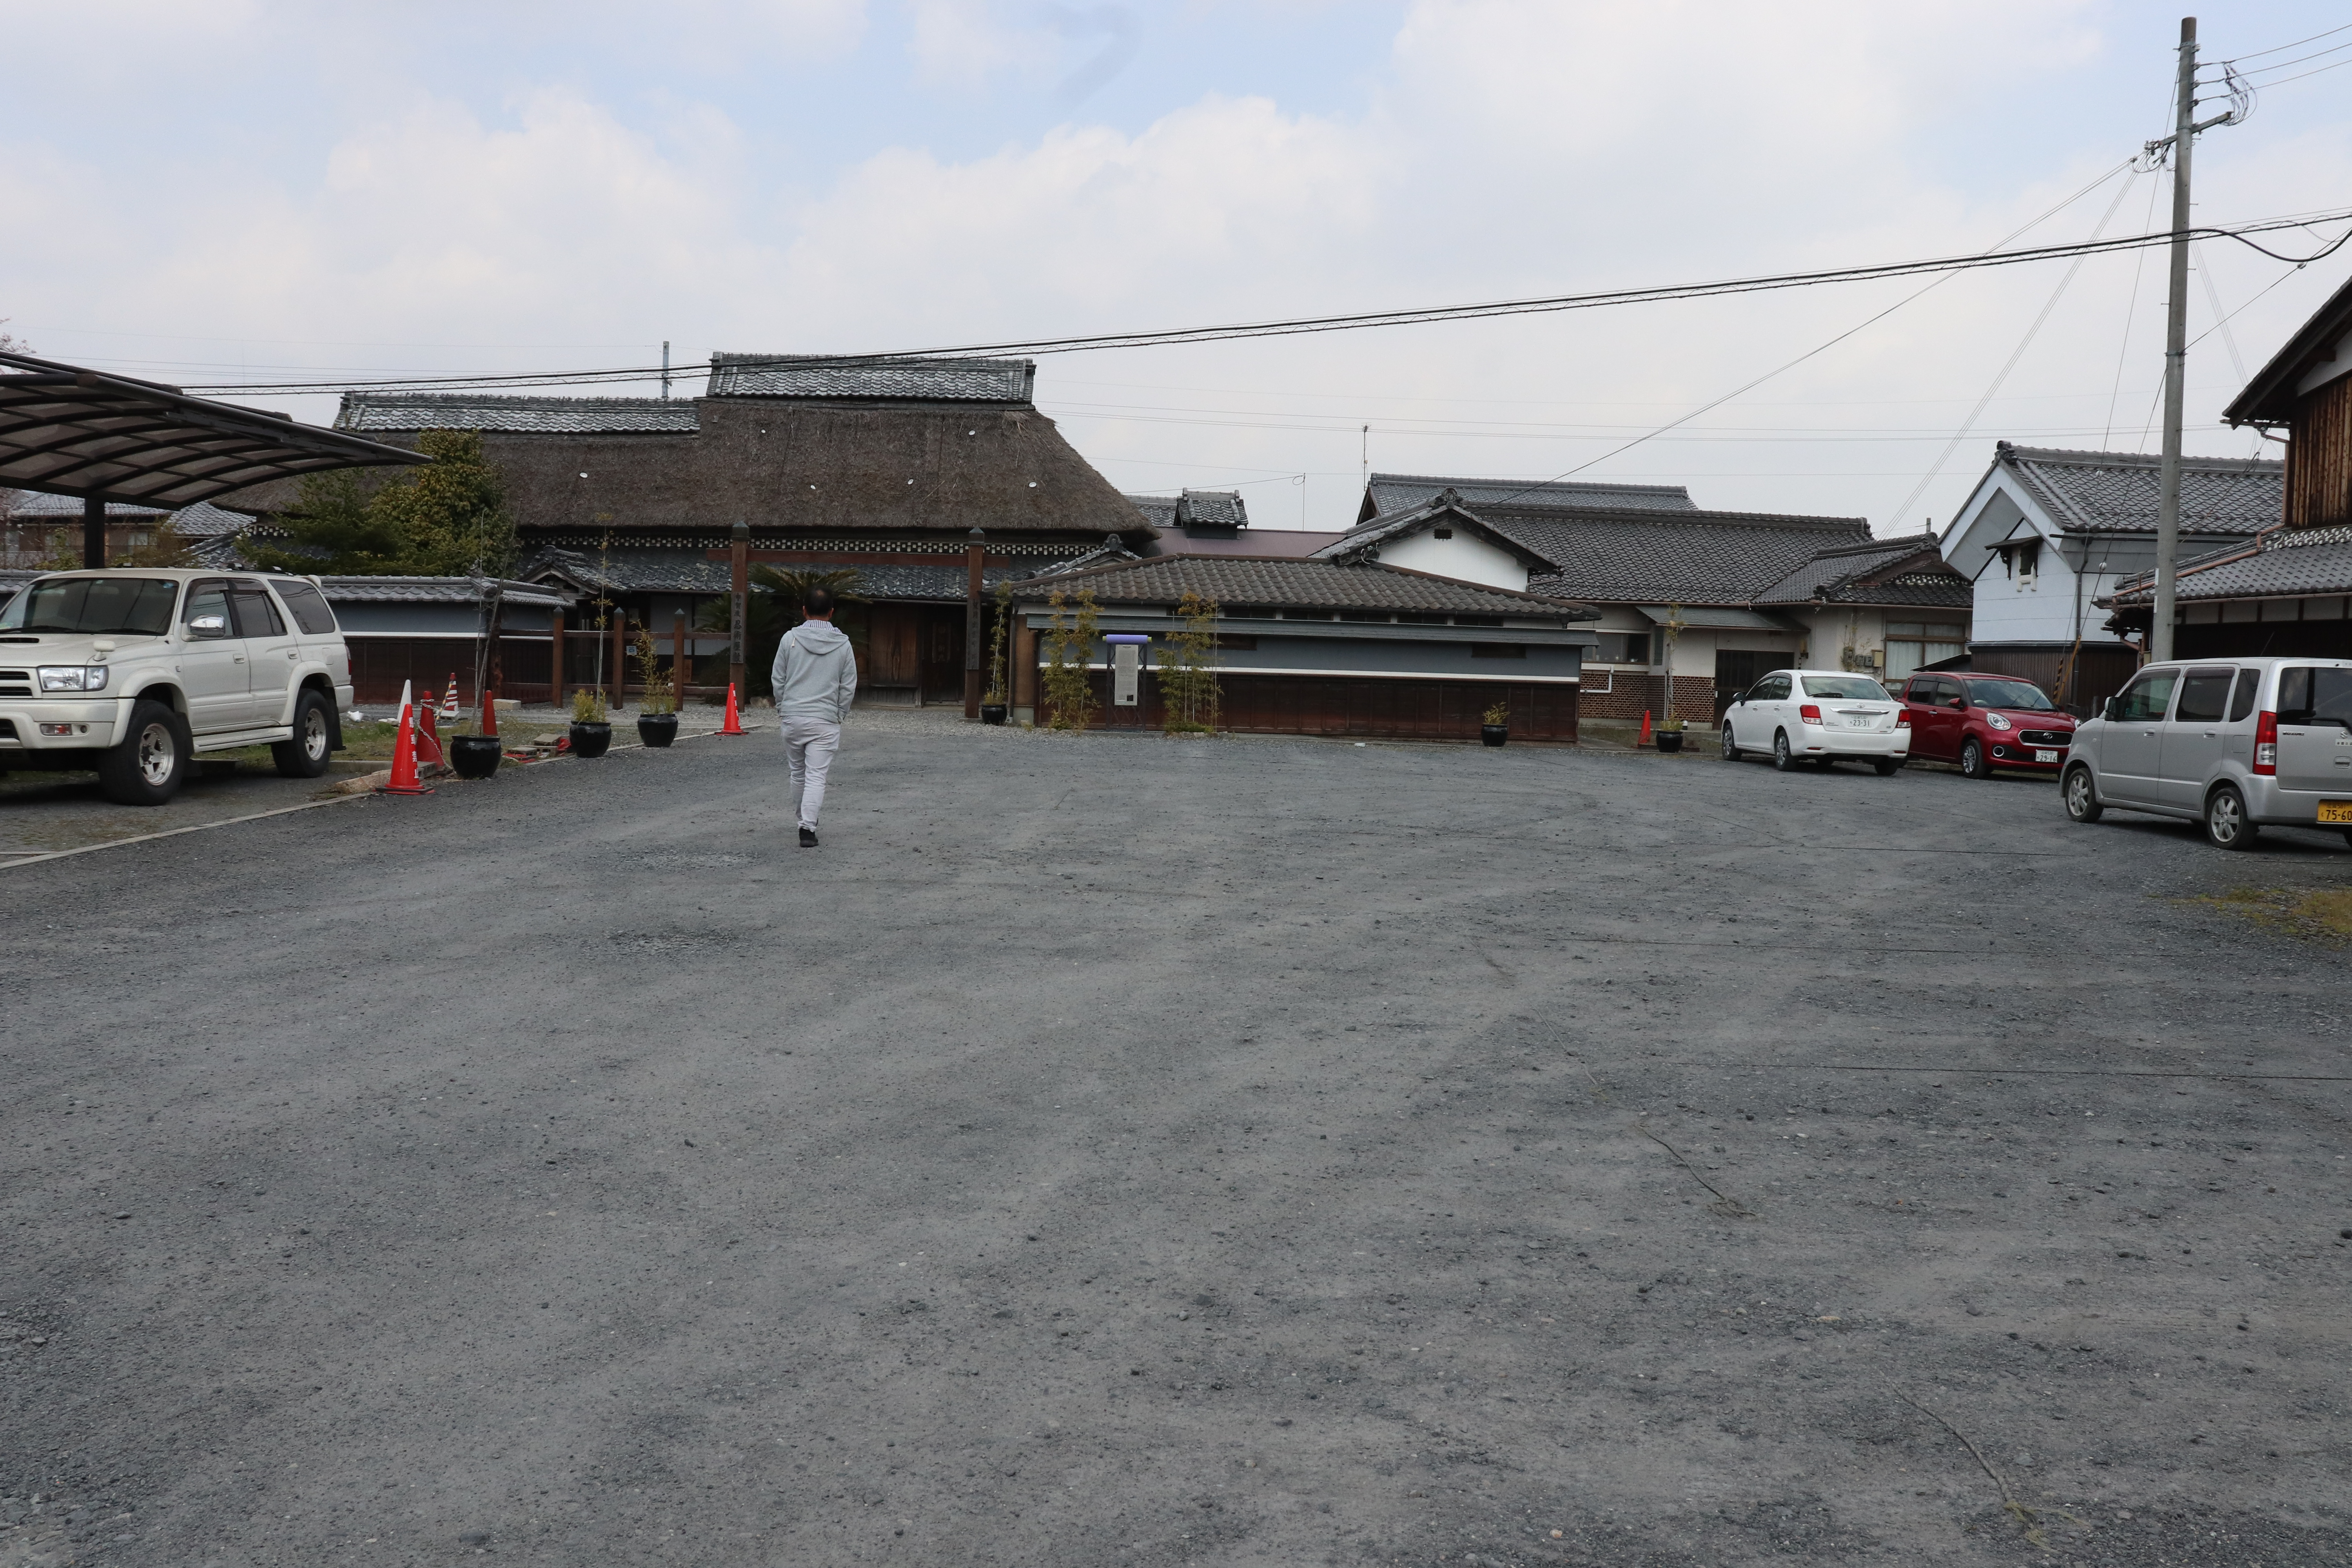 Parking lot of the Koka Ninja House.